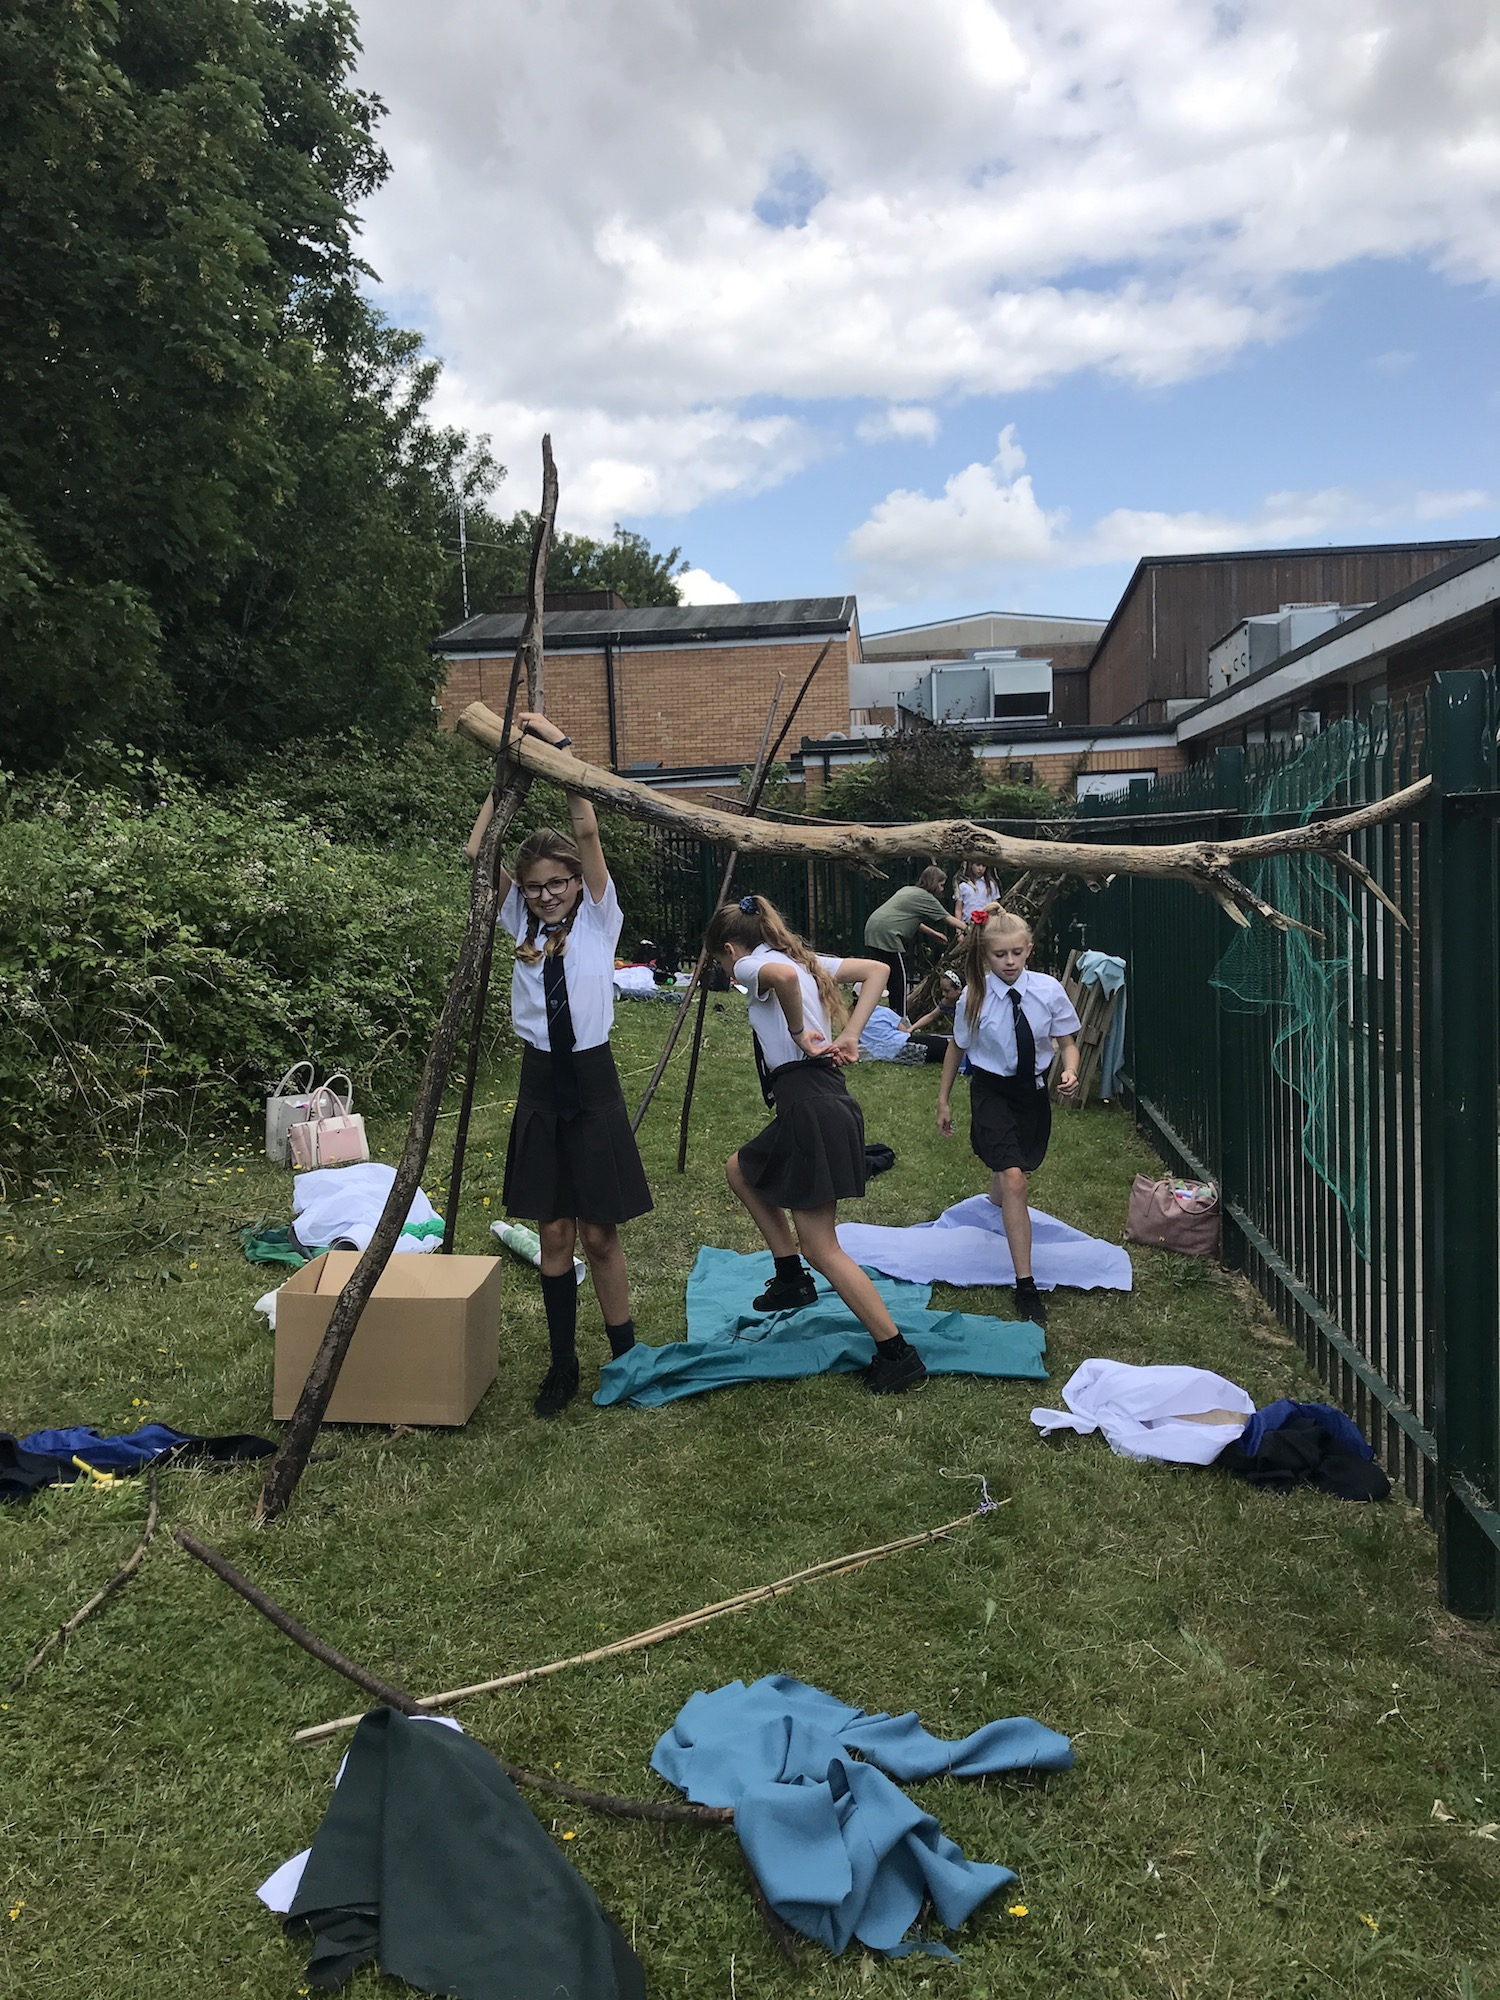 Children building a den at Longhill school